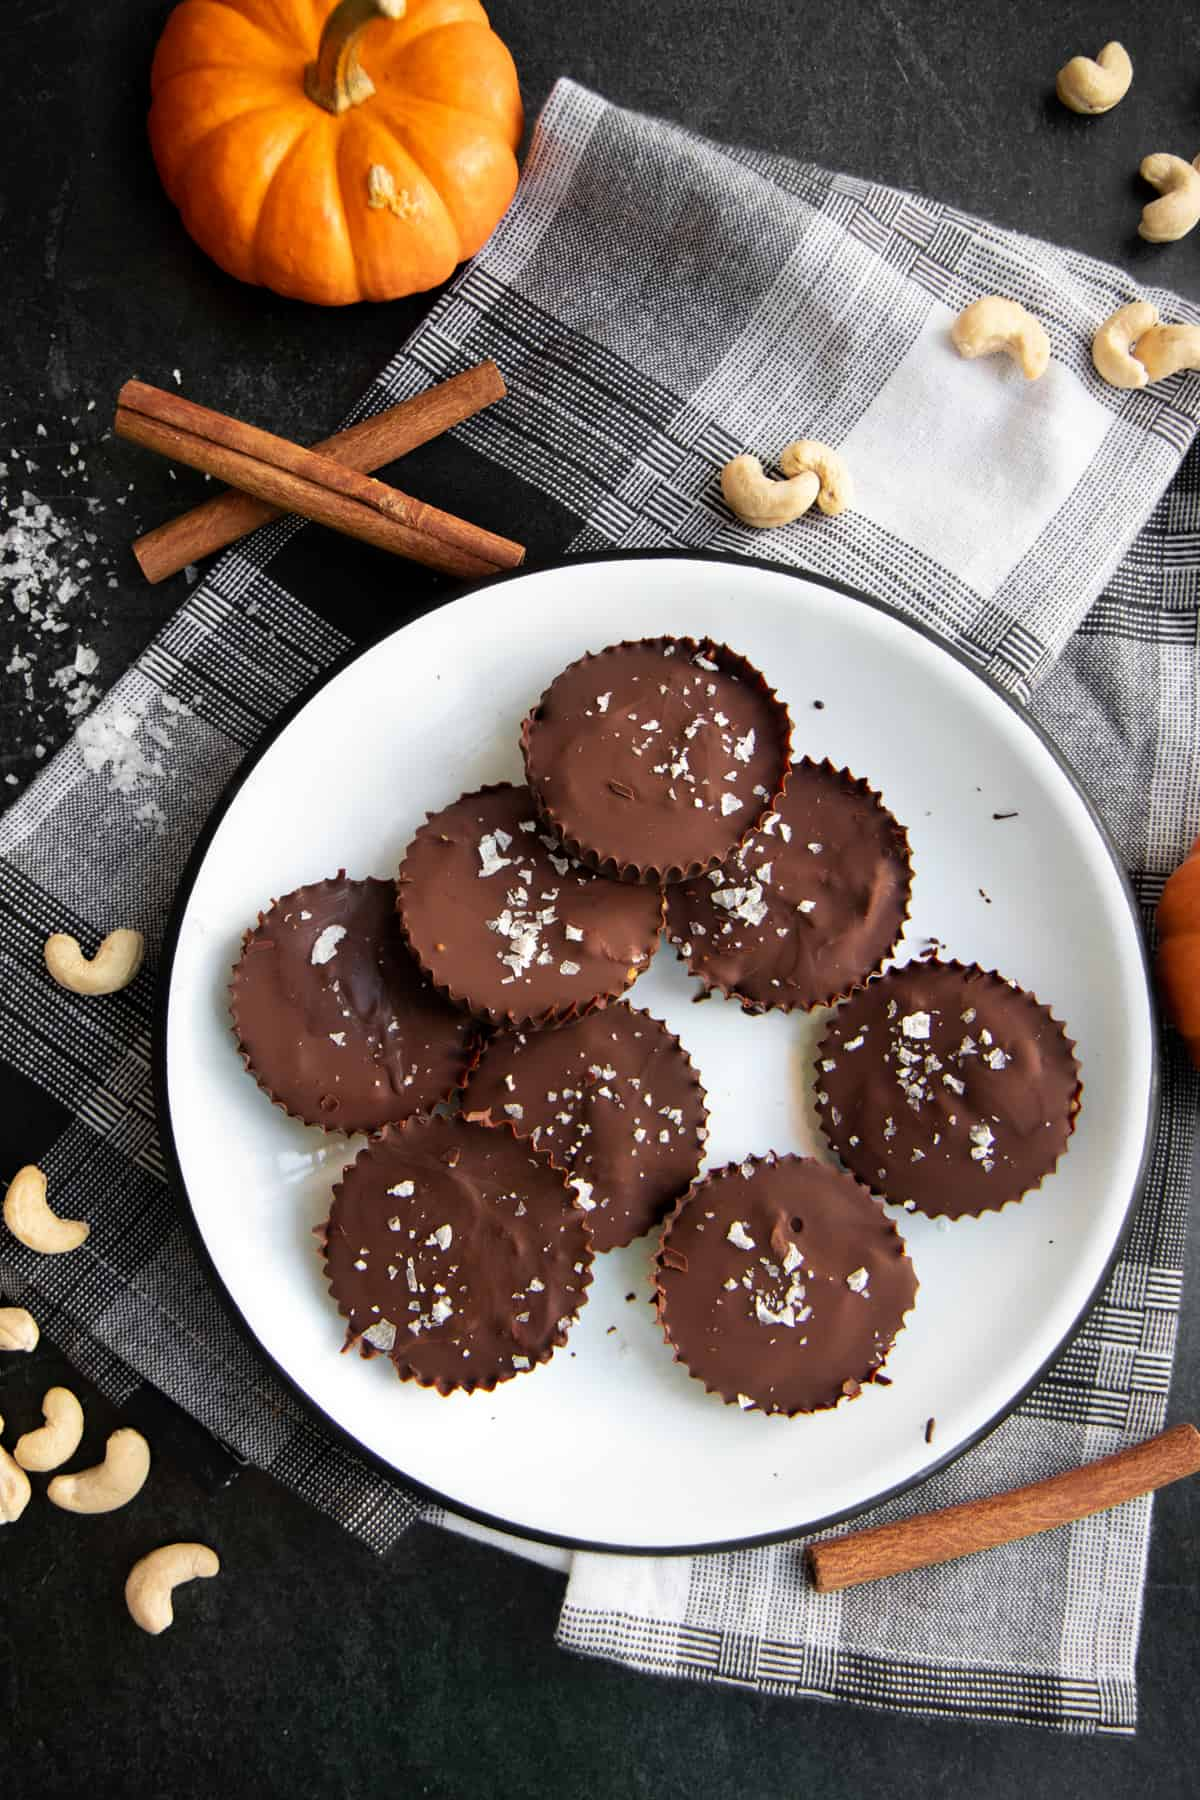 Pumpkin Spice Dark Chocolate Nut Butter Cups arranged on a white plate on top of a plaid background.